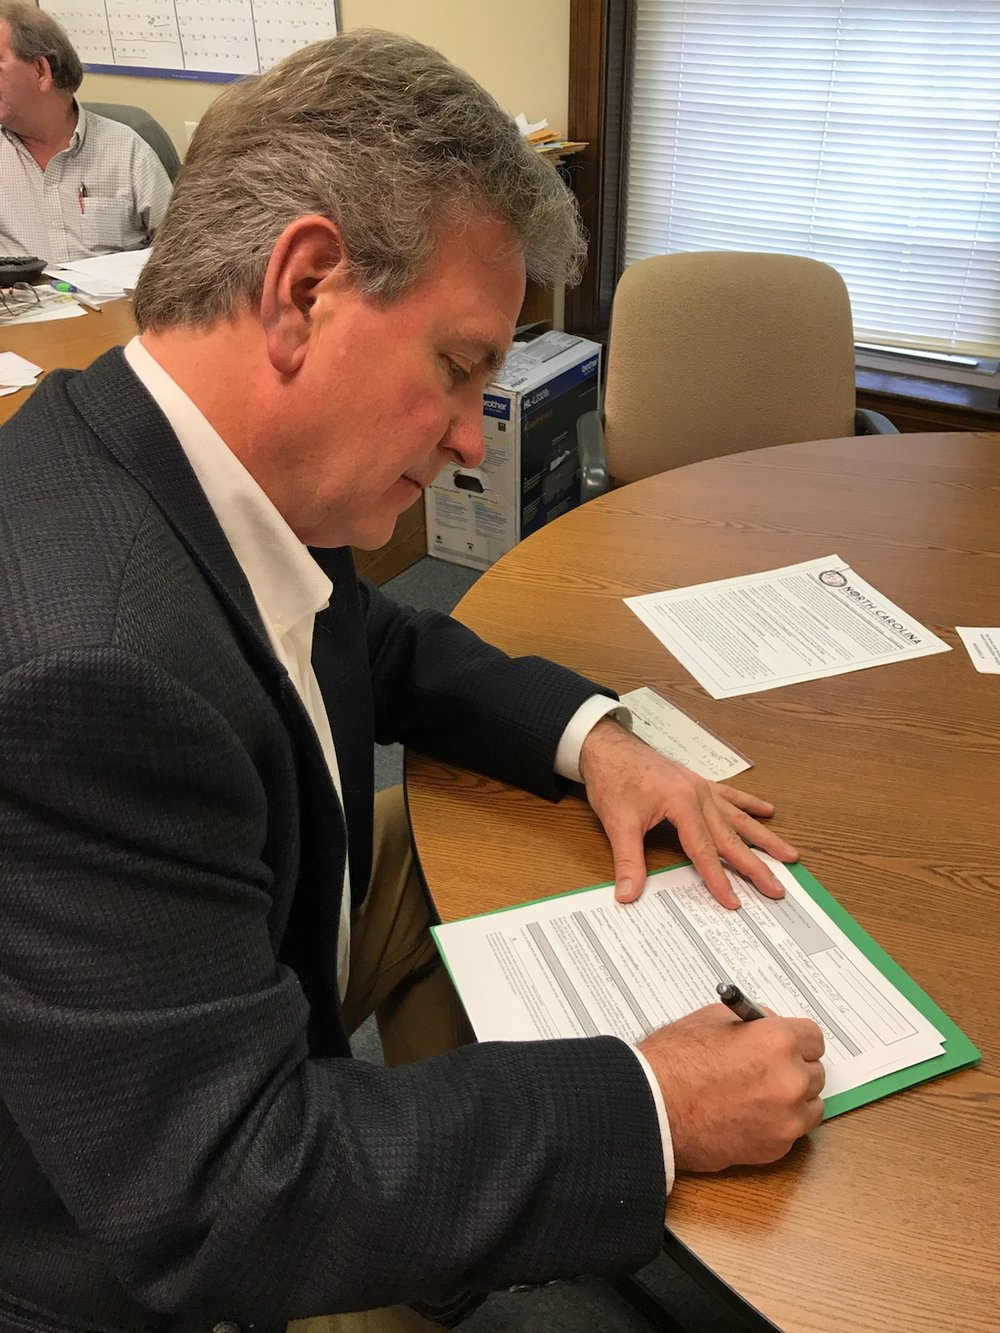 John filing his official forms to run for office